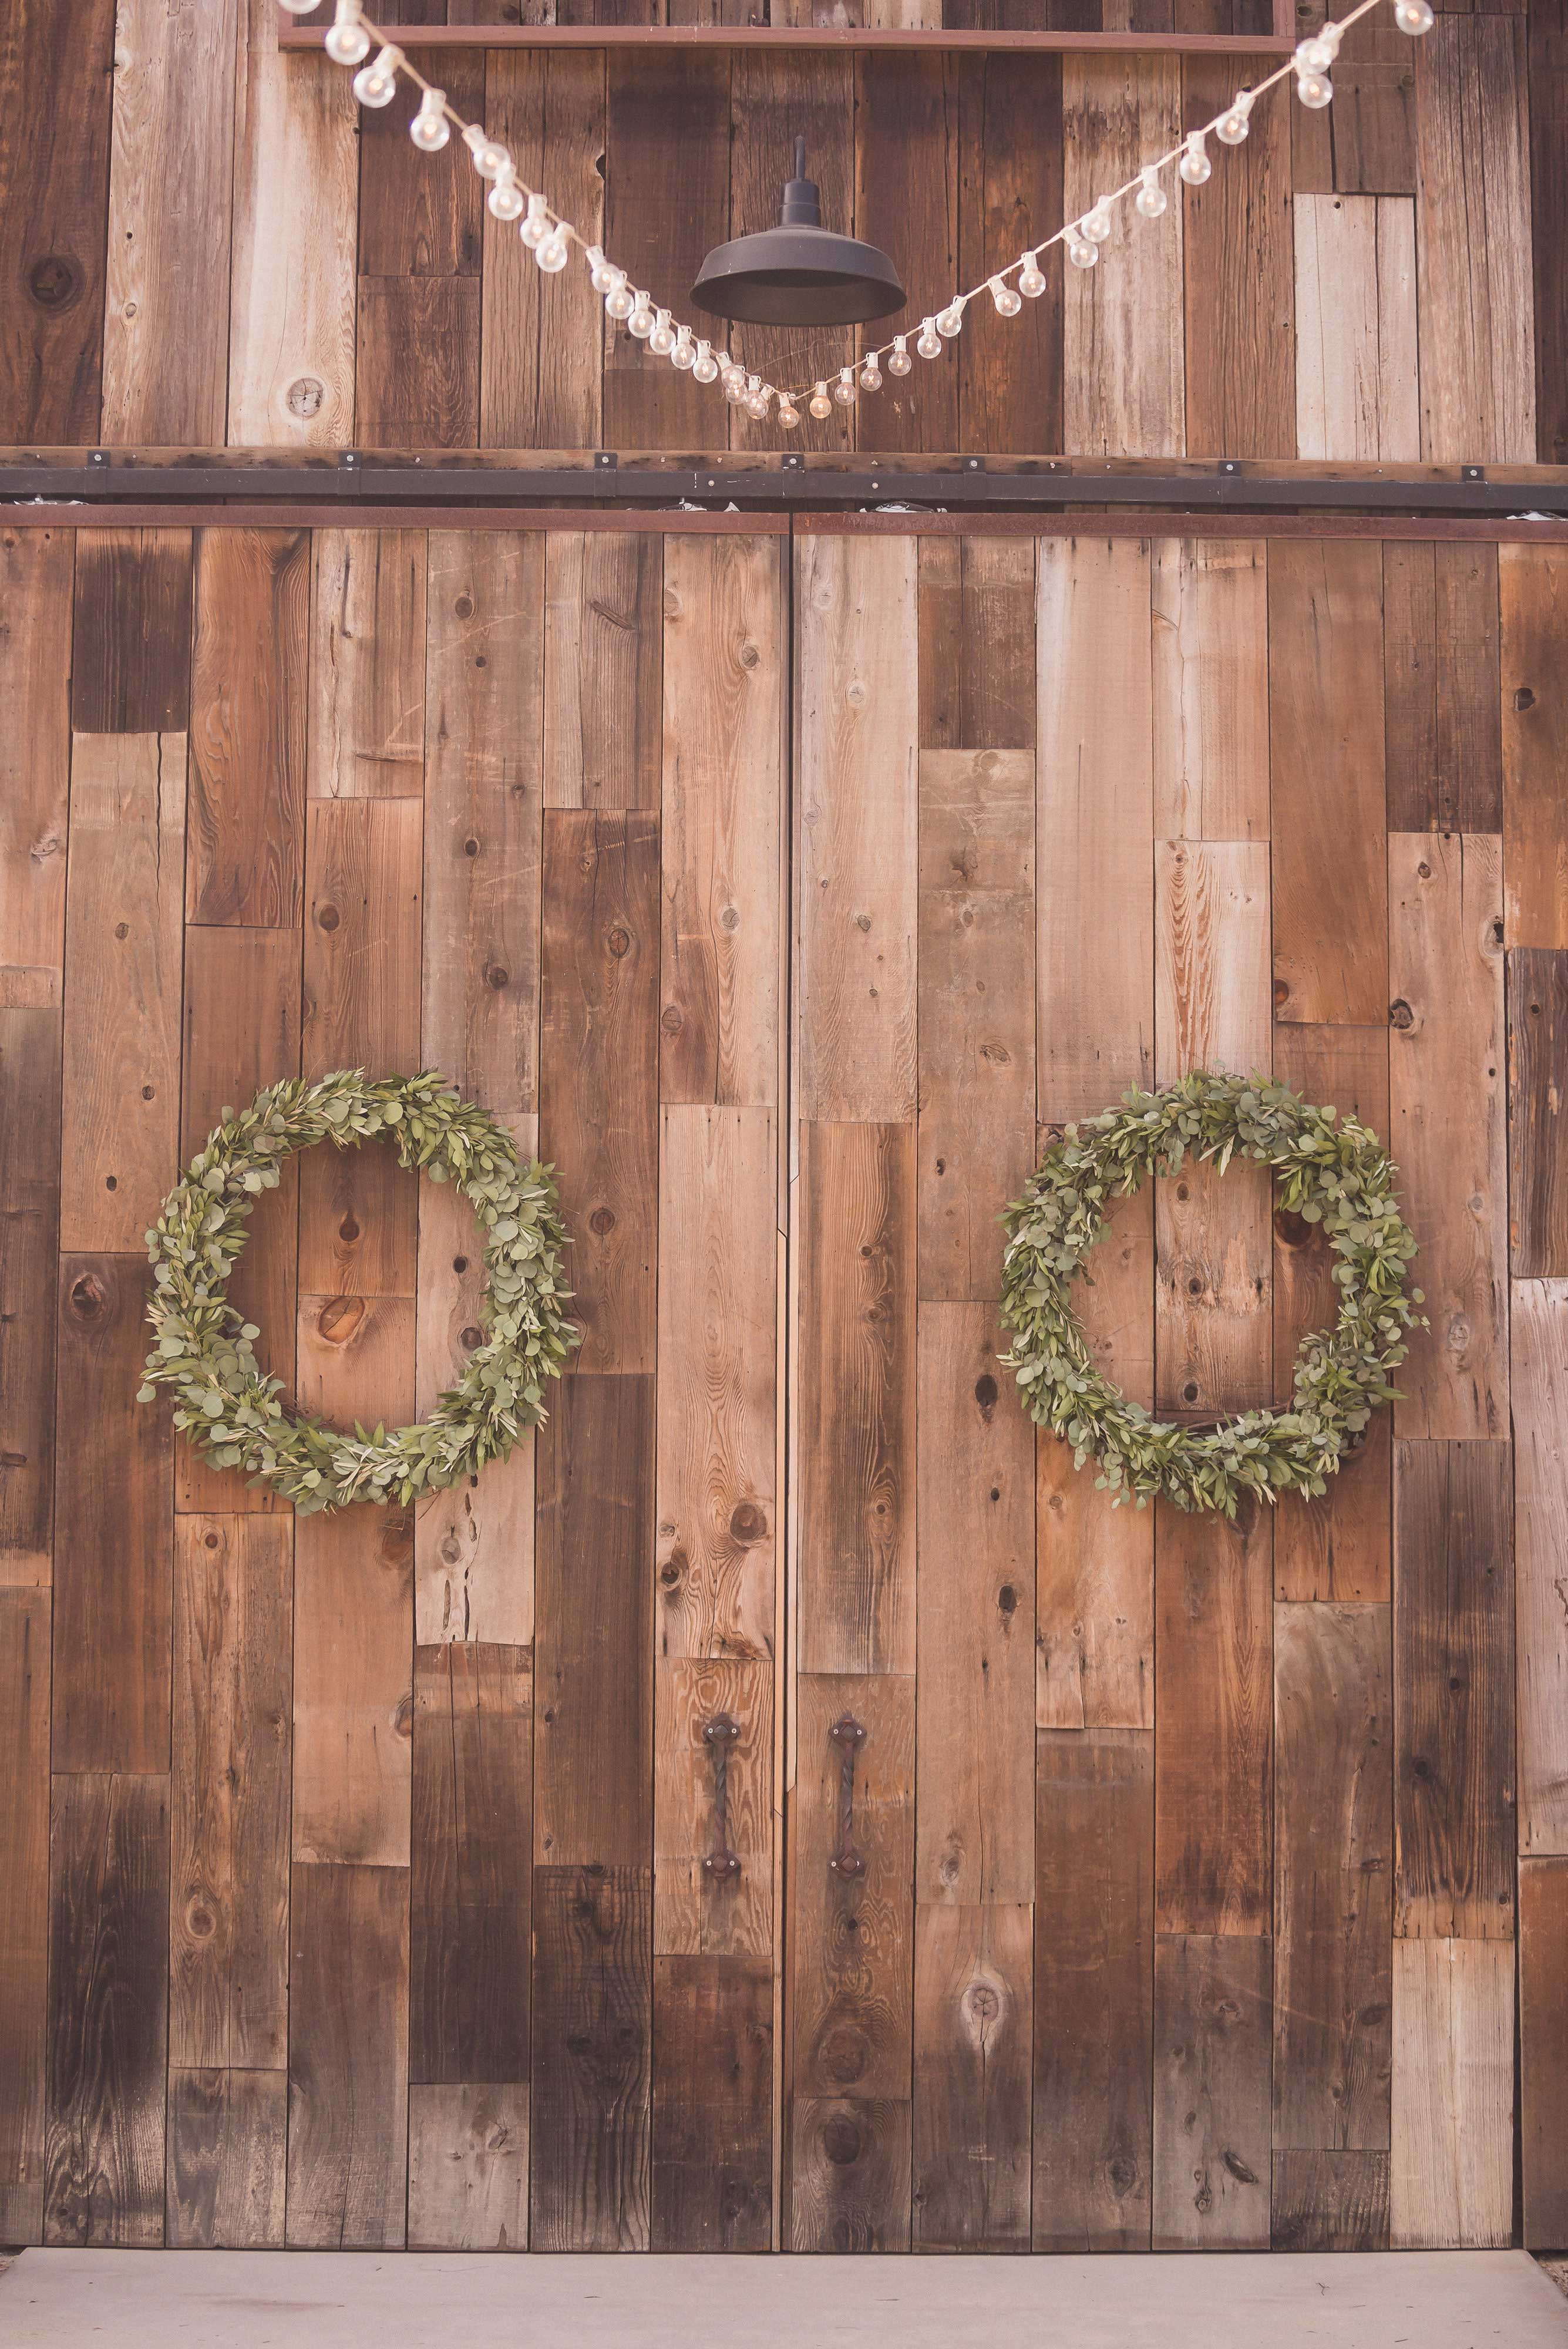 Two greenery wreath arrangements on rustic vintage barn door for wedding reception